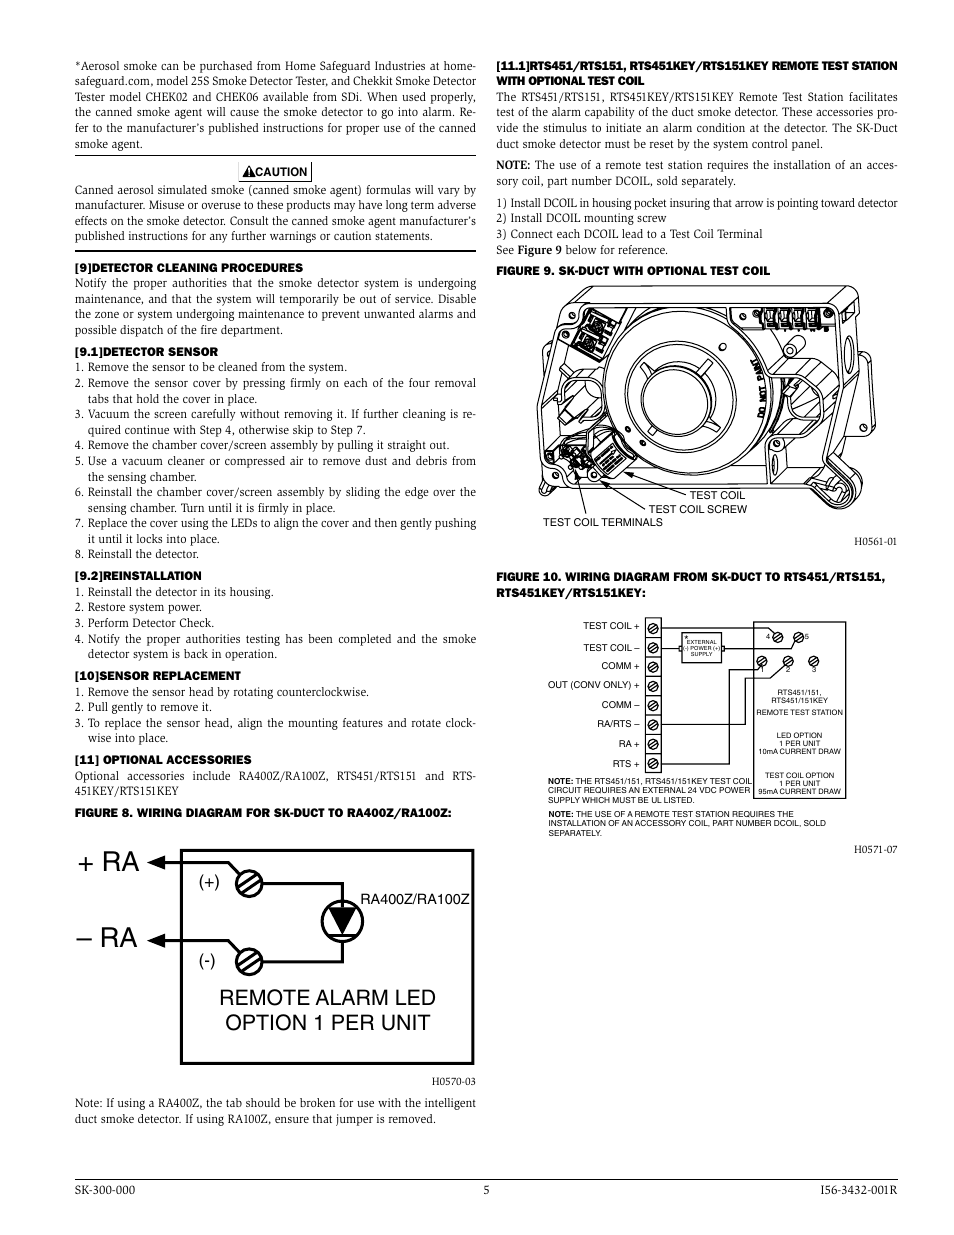 silentknight sk duct addressable photoelectric duct detector page5 ra ra, remote alarm led option 1 per unit silentknight sk duct rts451 wiring diagram at webbmarketing.co